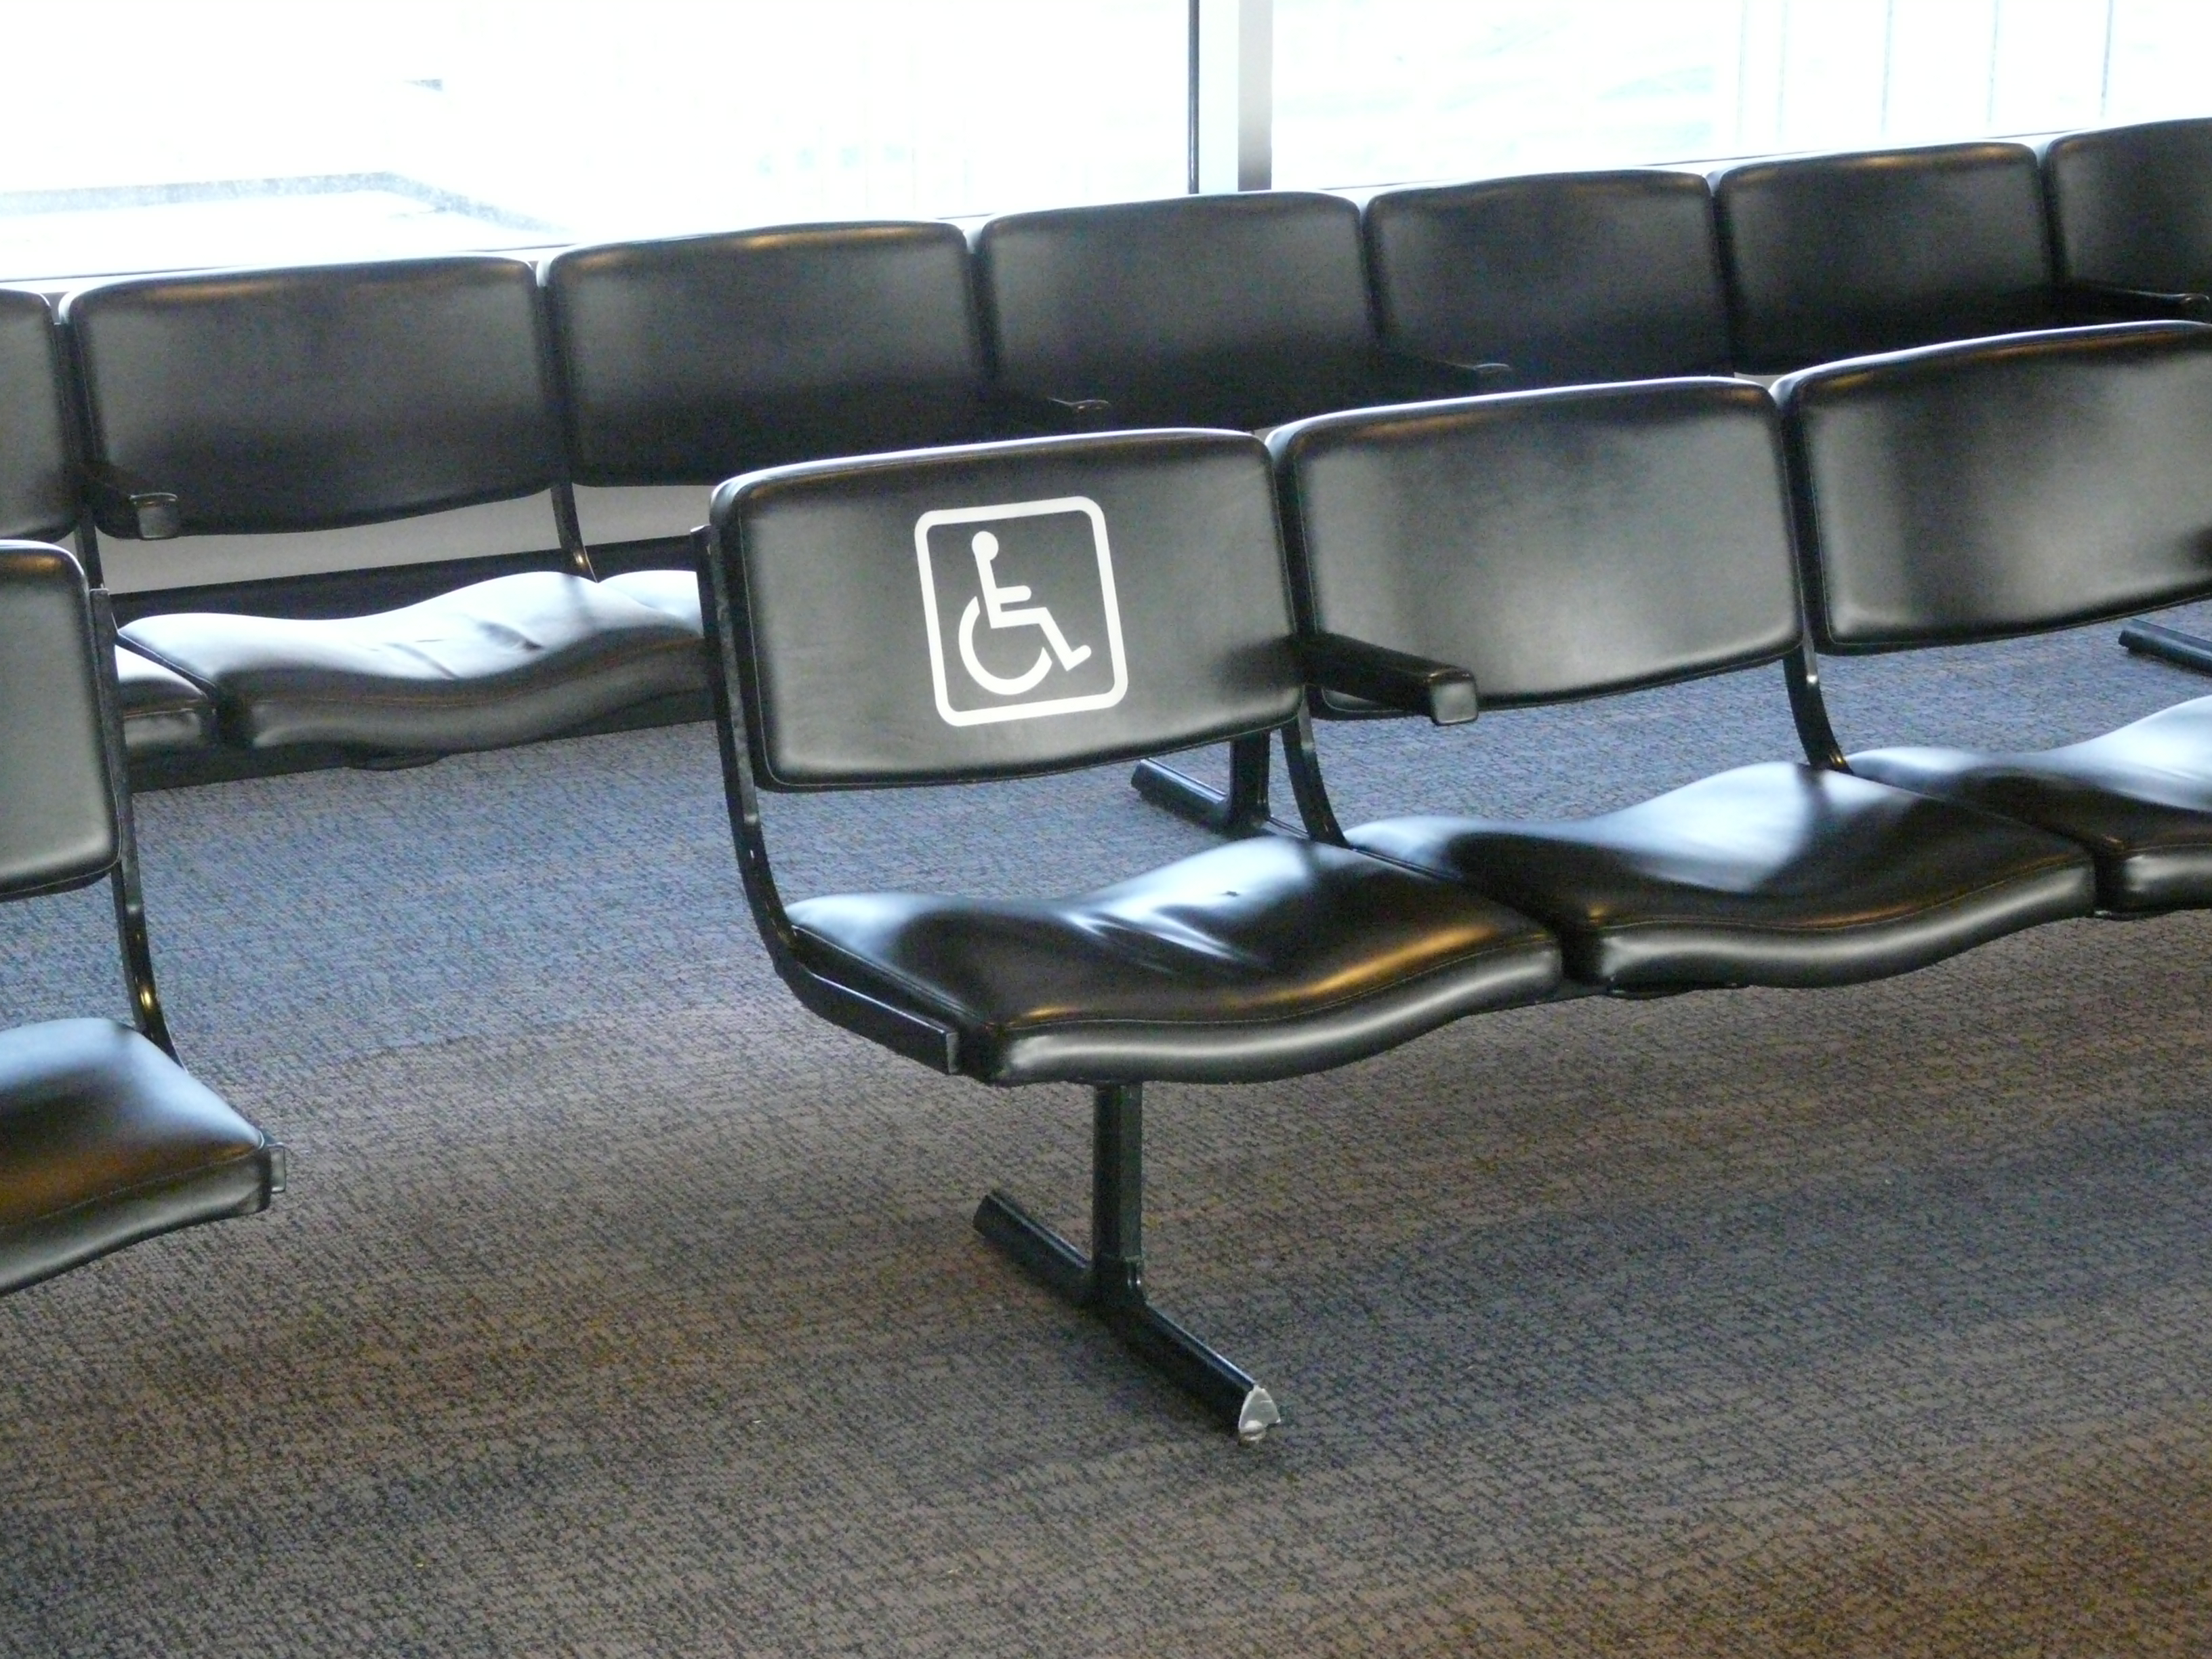 File:O\'Hare - chair for handicapped.JPG - Wikimedia Commons